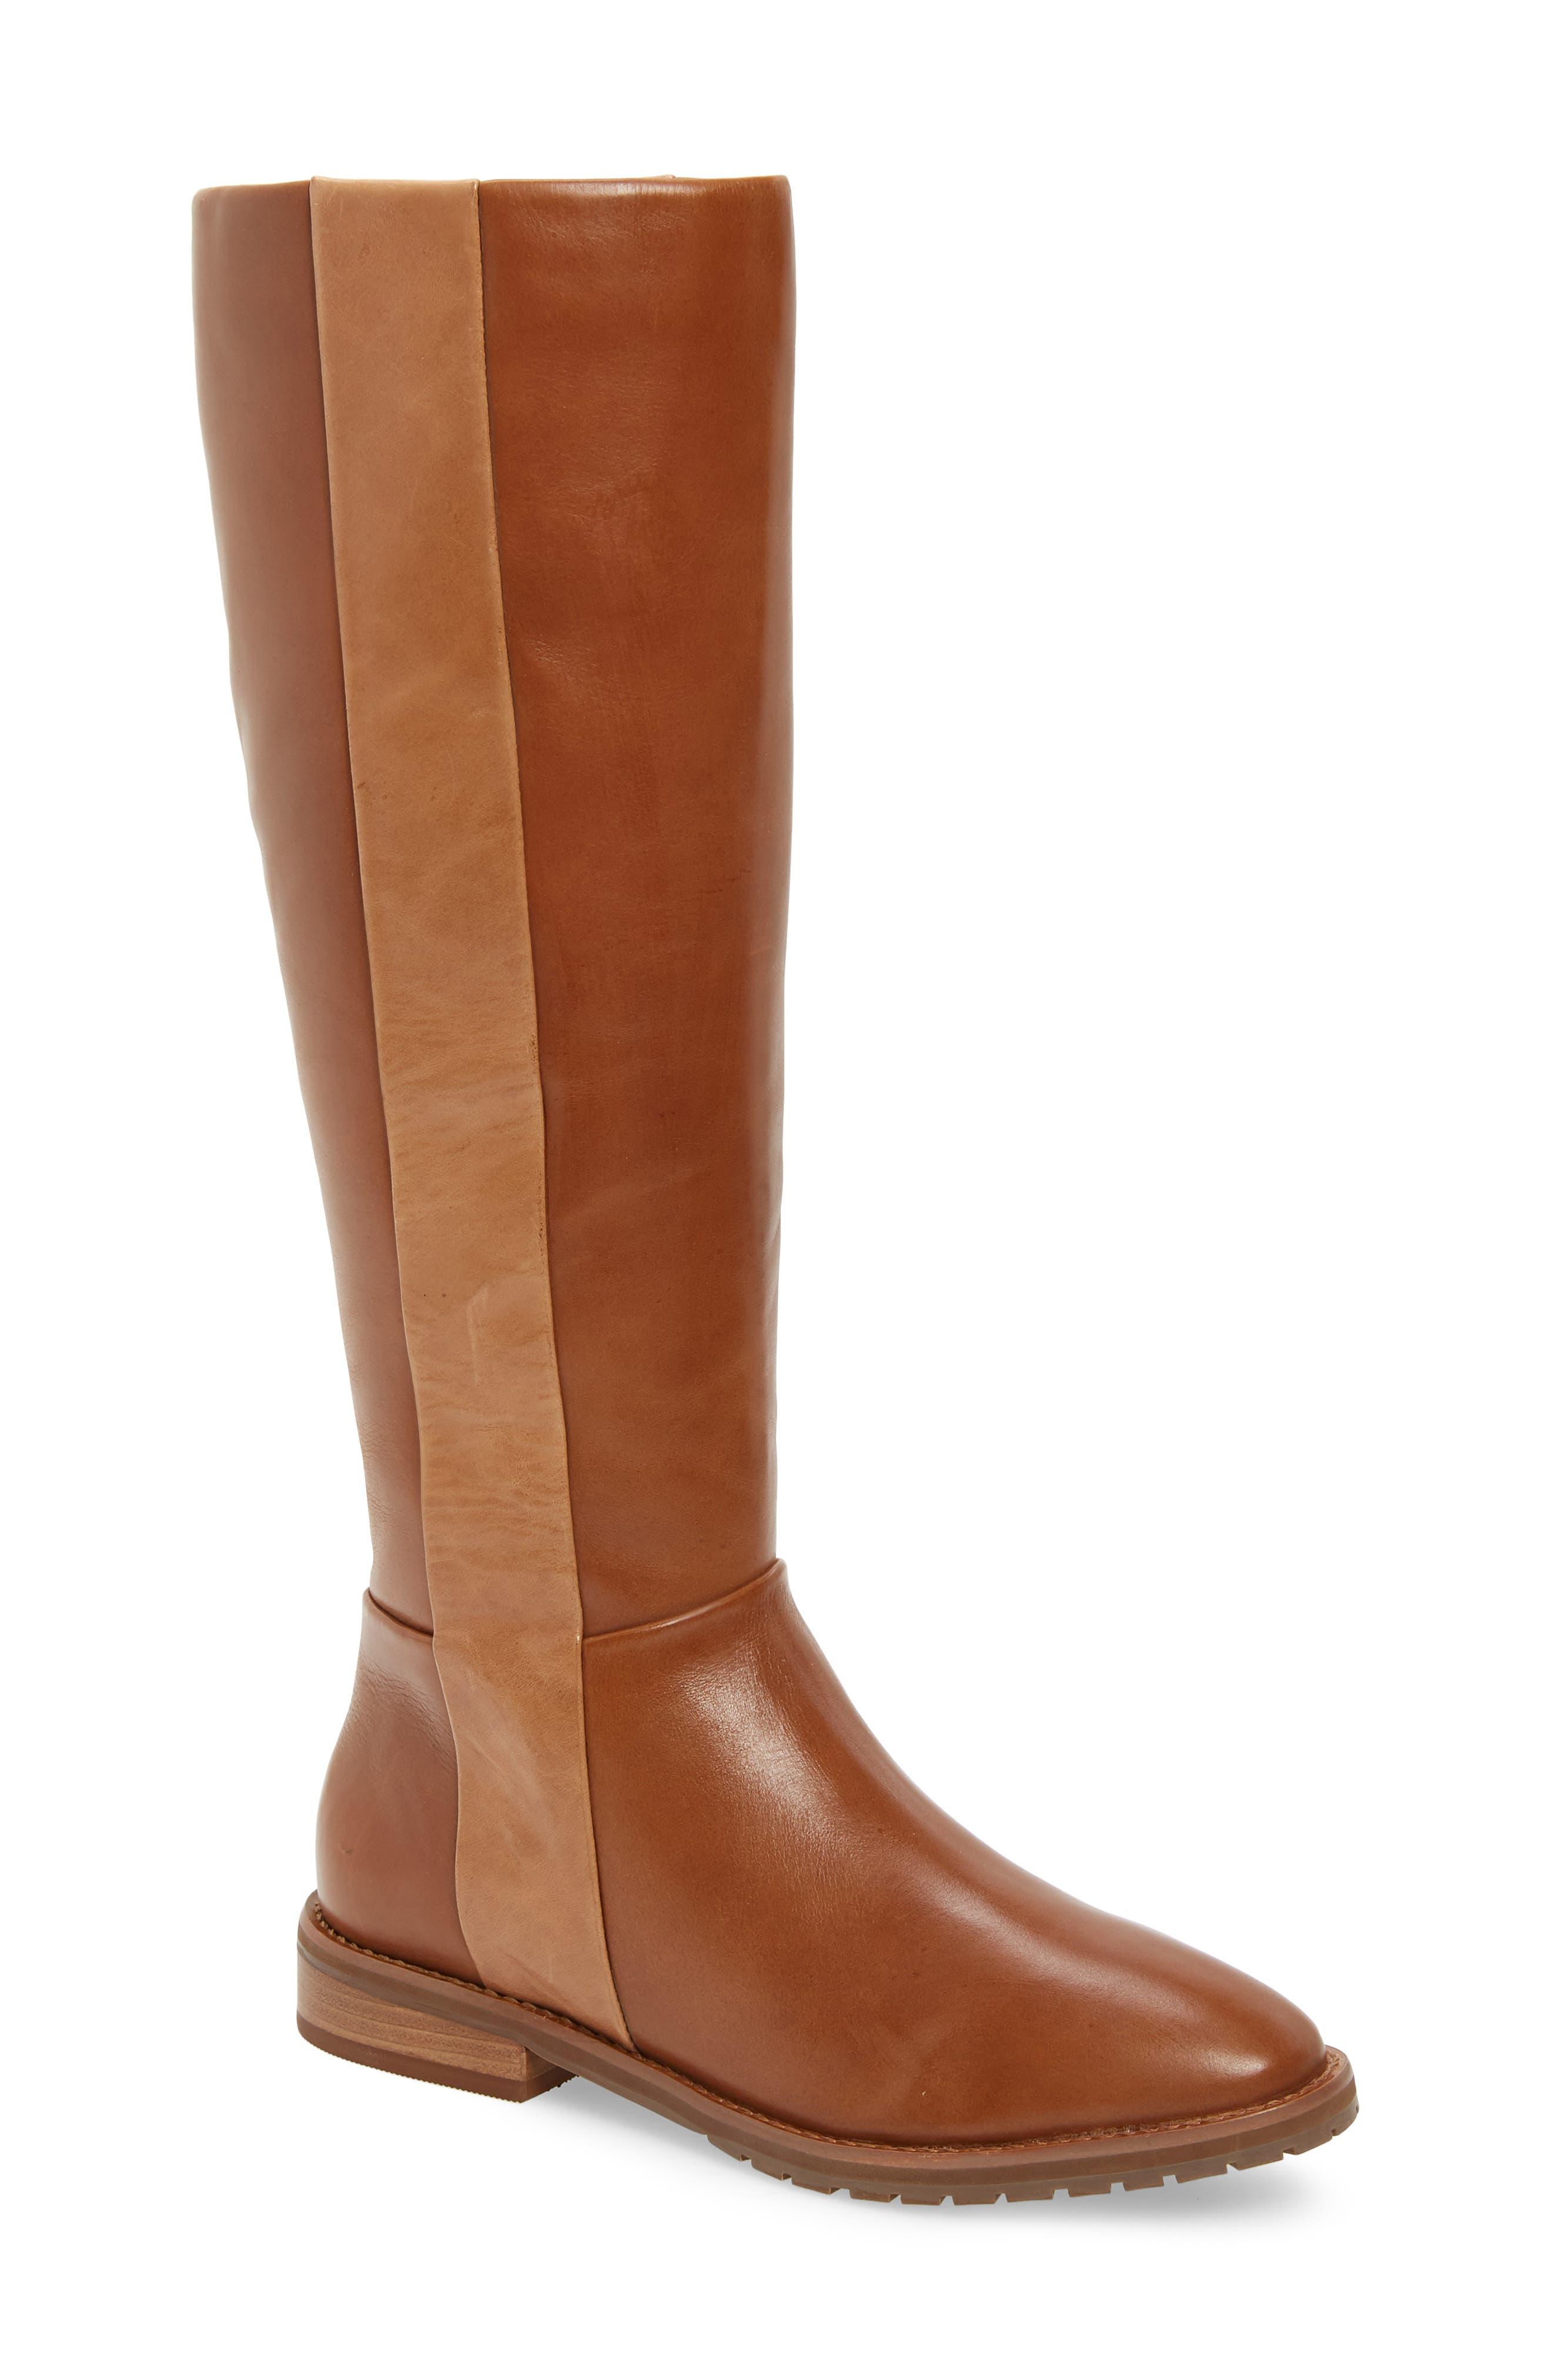 Lust For Life Mindset Knee High Boot, Brown